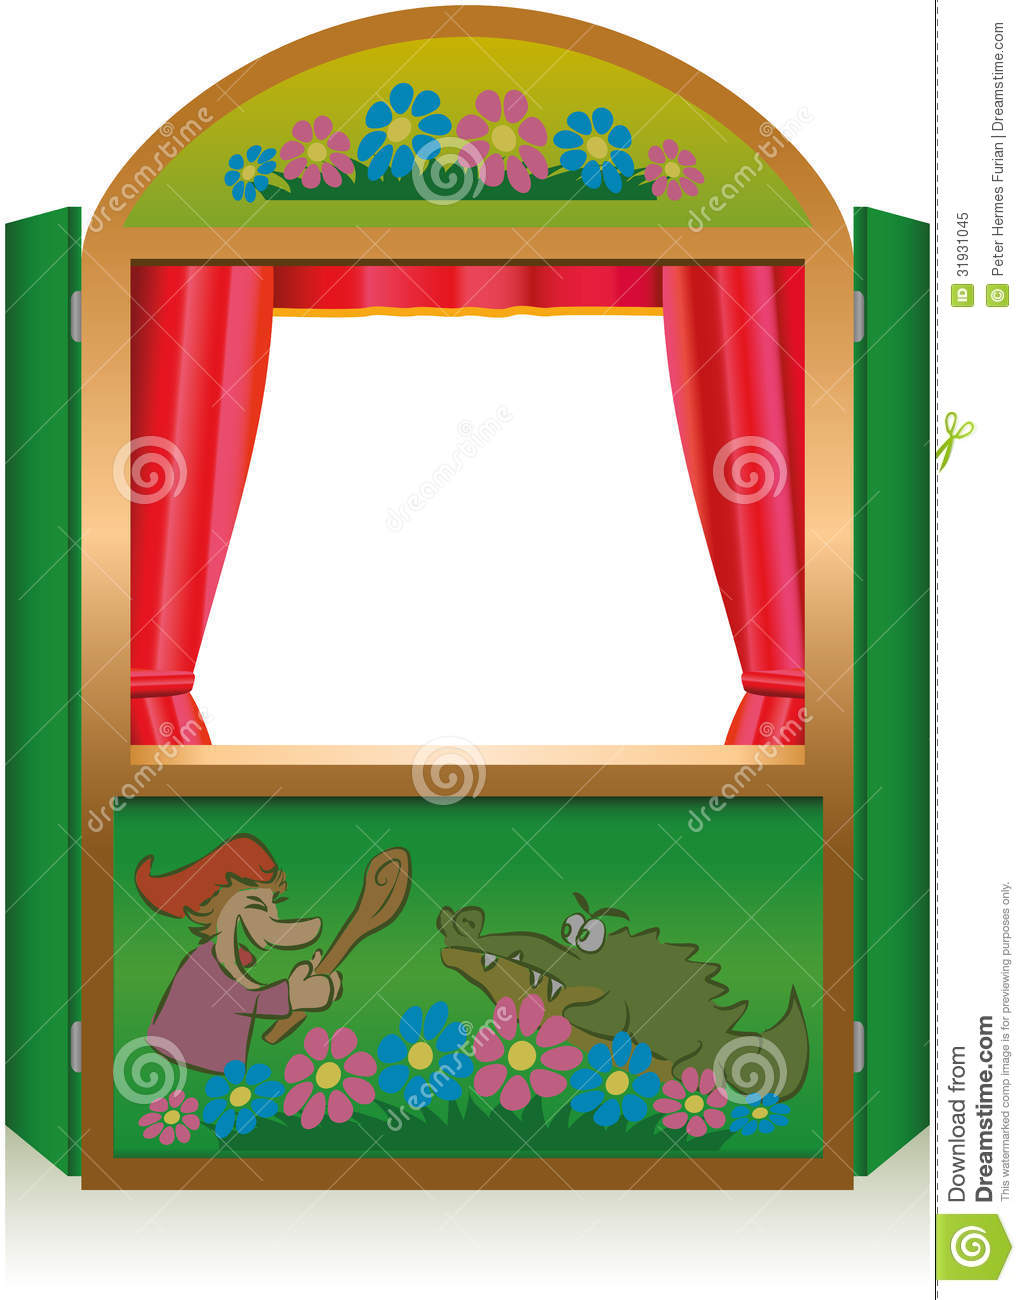 Punch And Judy Booth Royalty Free Stock Photo.